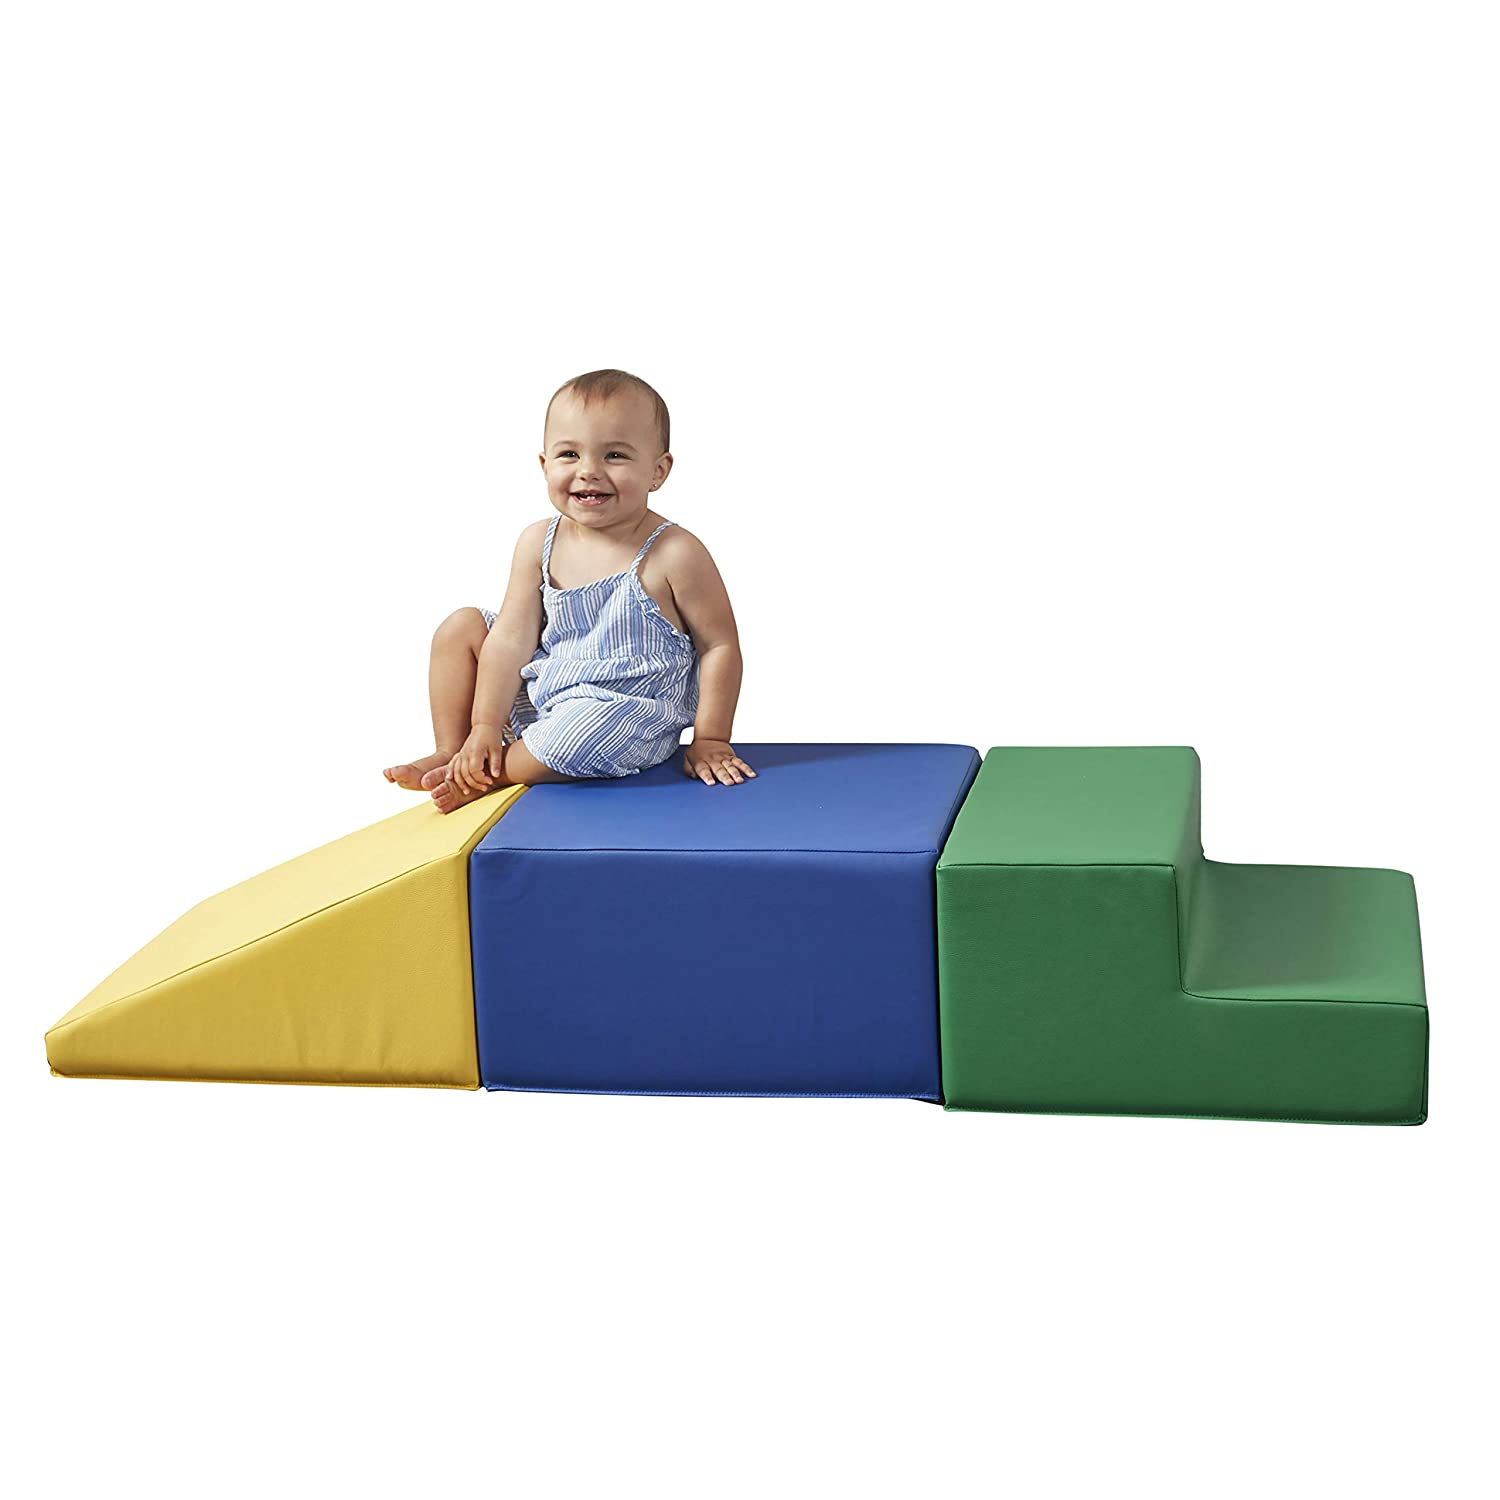 Climbing Sliding FDP SoftScape Playtime Step and Slide Climber for Infants and Toddlers Crawling Colorful Beginner Soft Foam Structure for Indoor Active Play